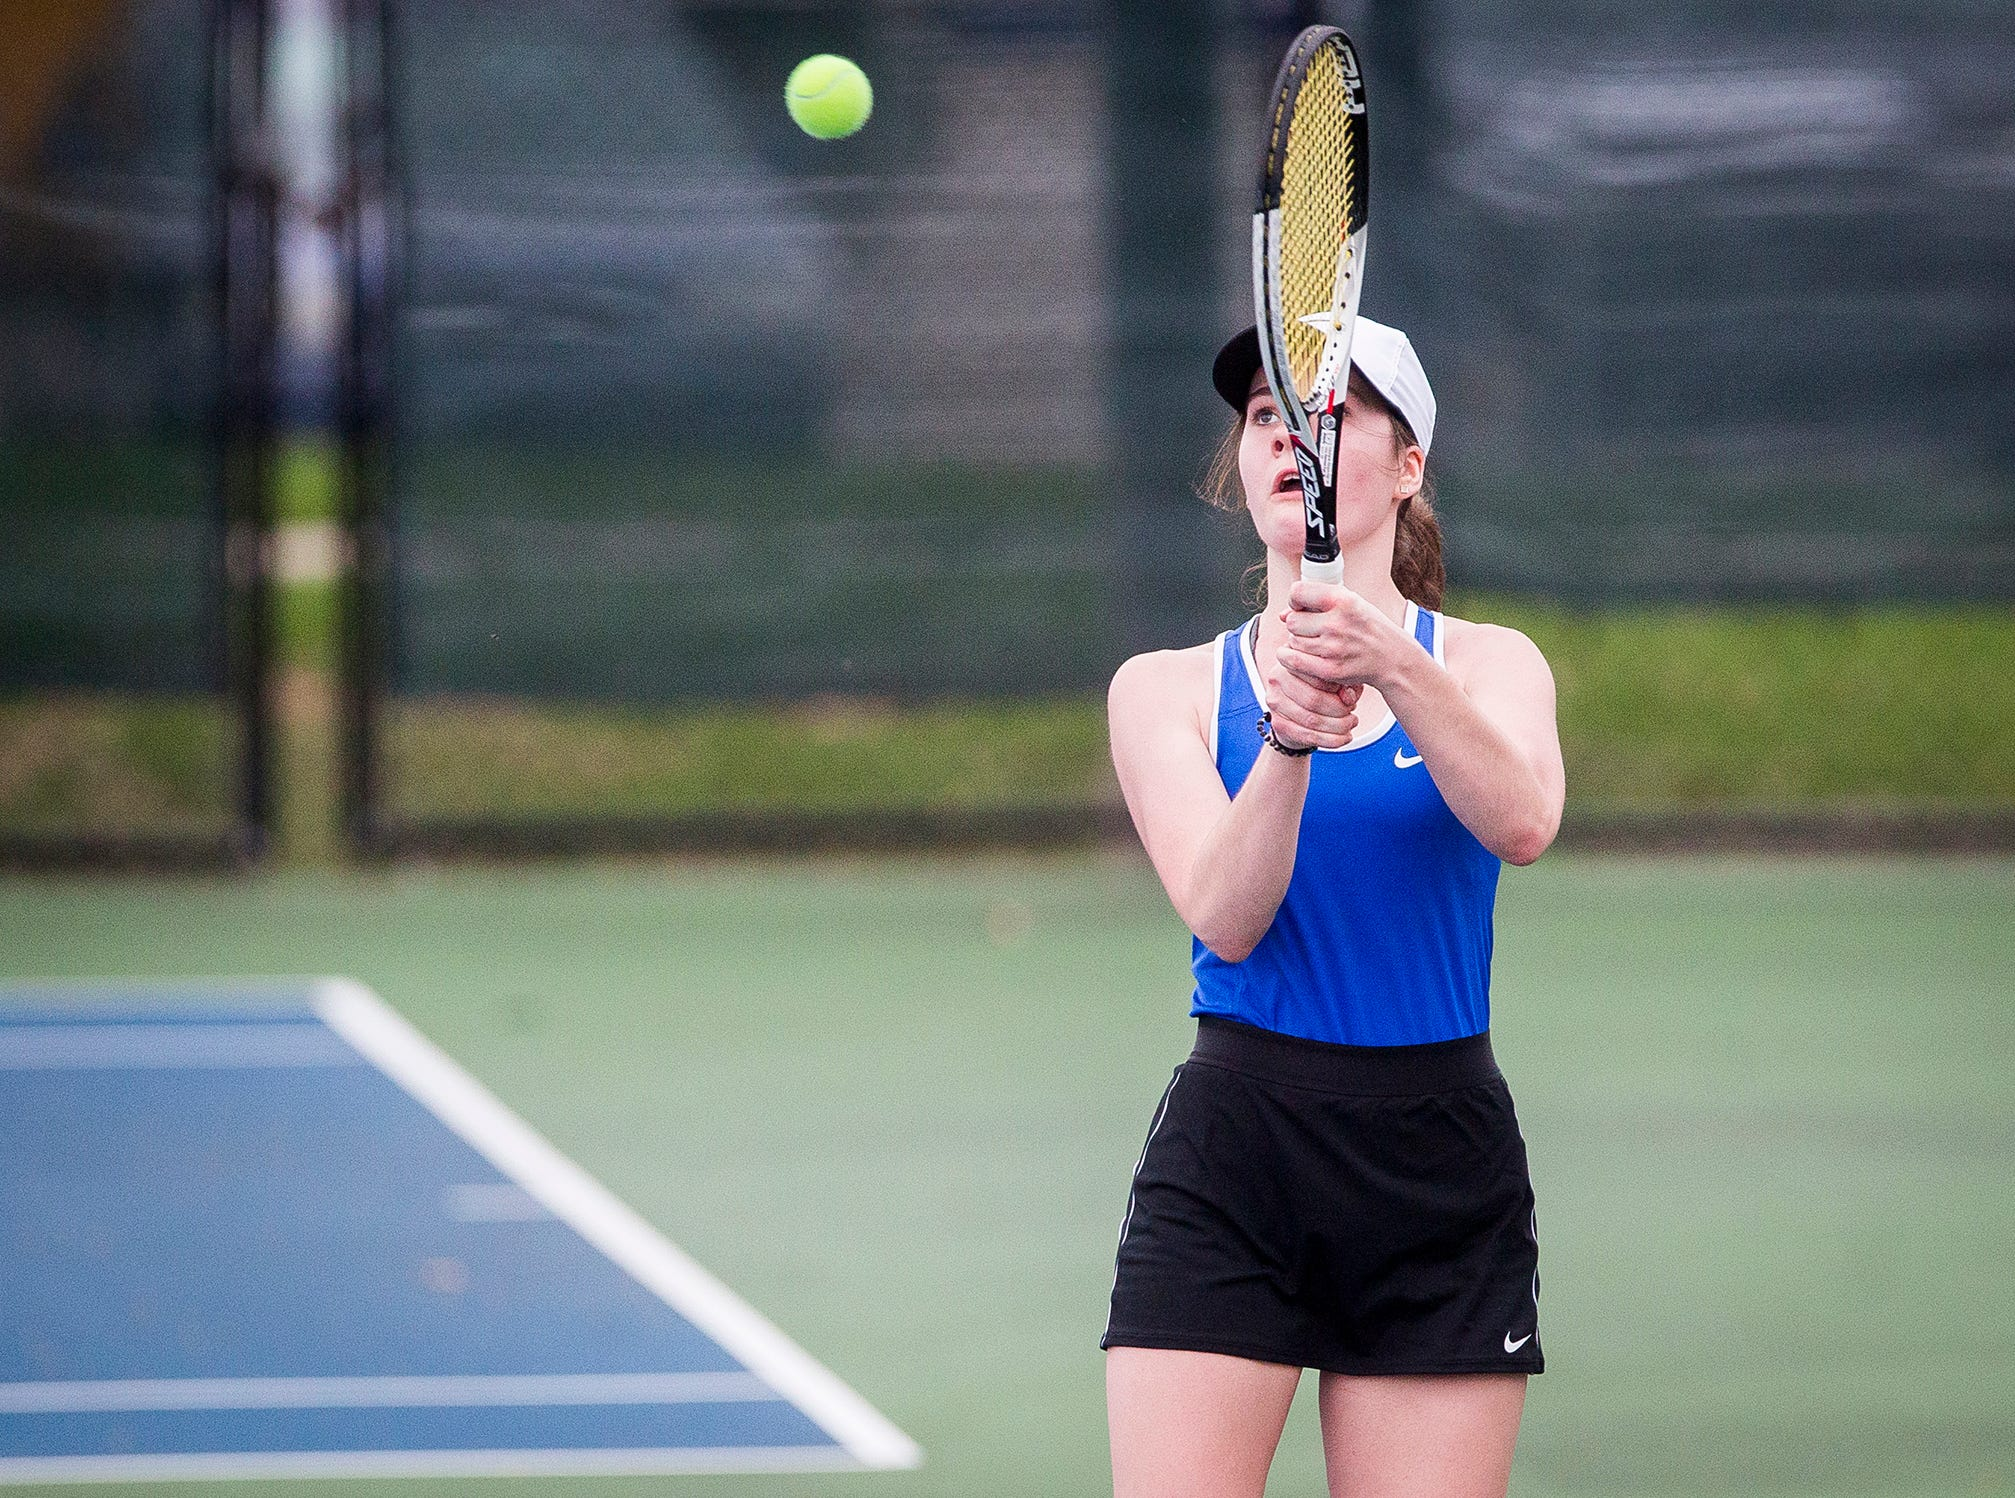 Burris' Sarah Billiter hits against Central's Catherine Dragiciu during her singles match at Ball State Thursday, April 11, 2019.